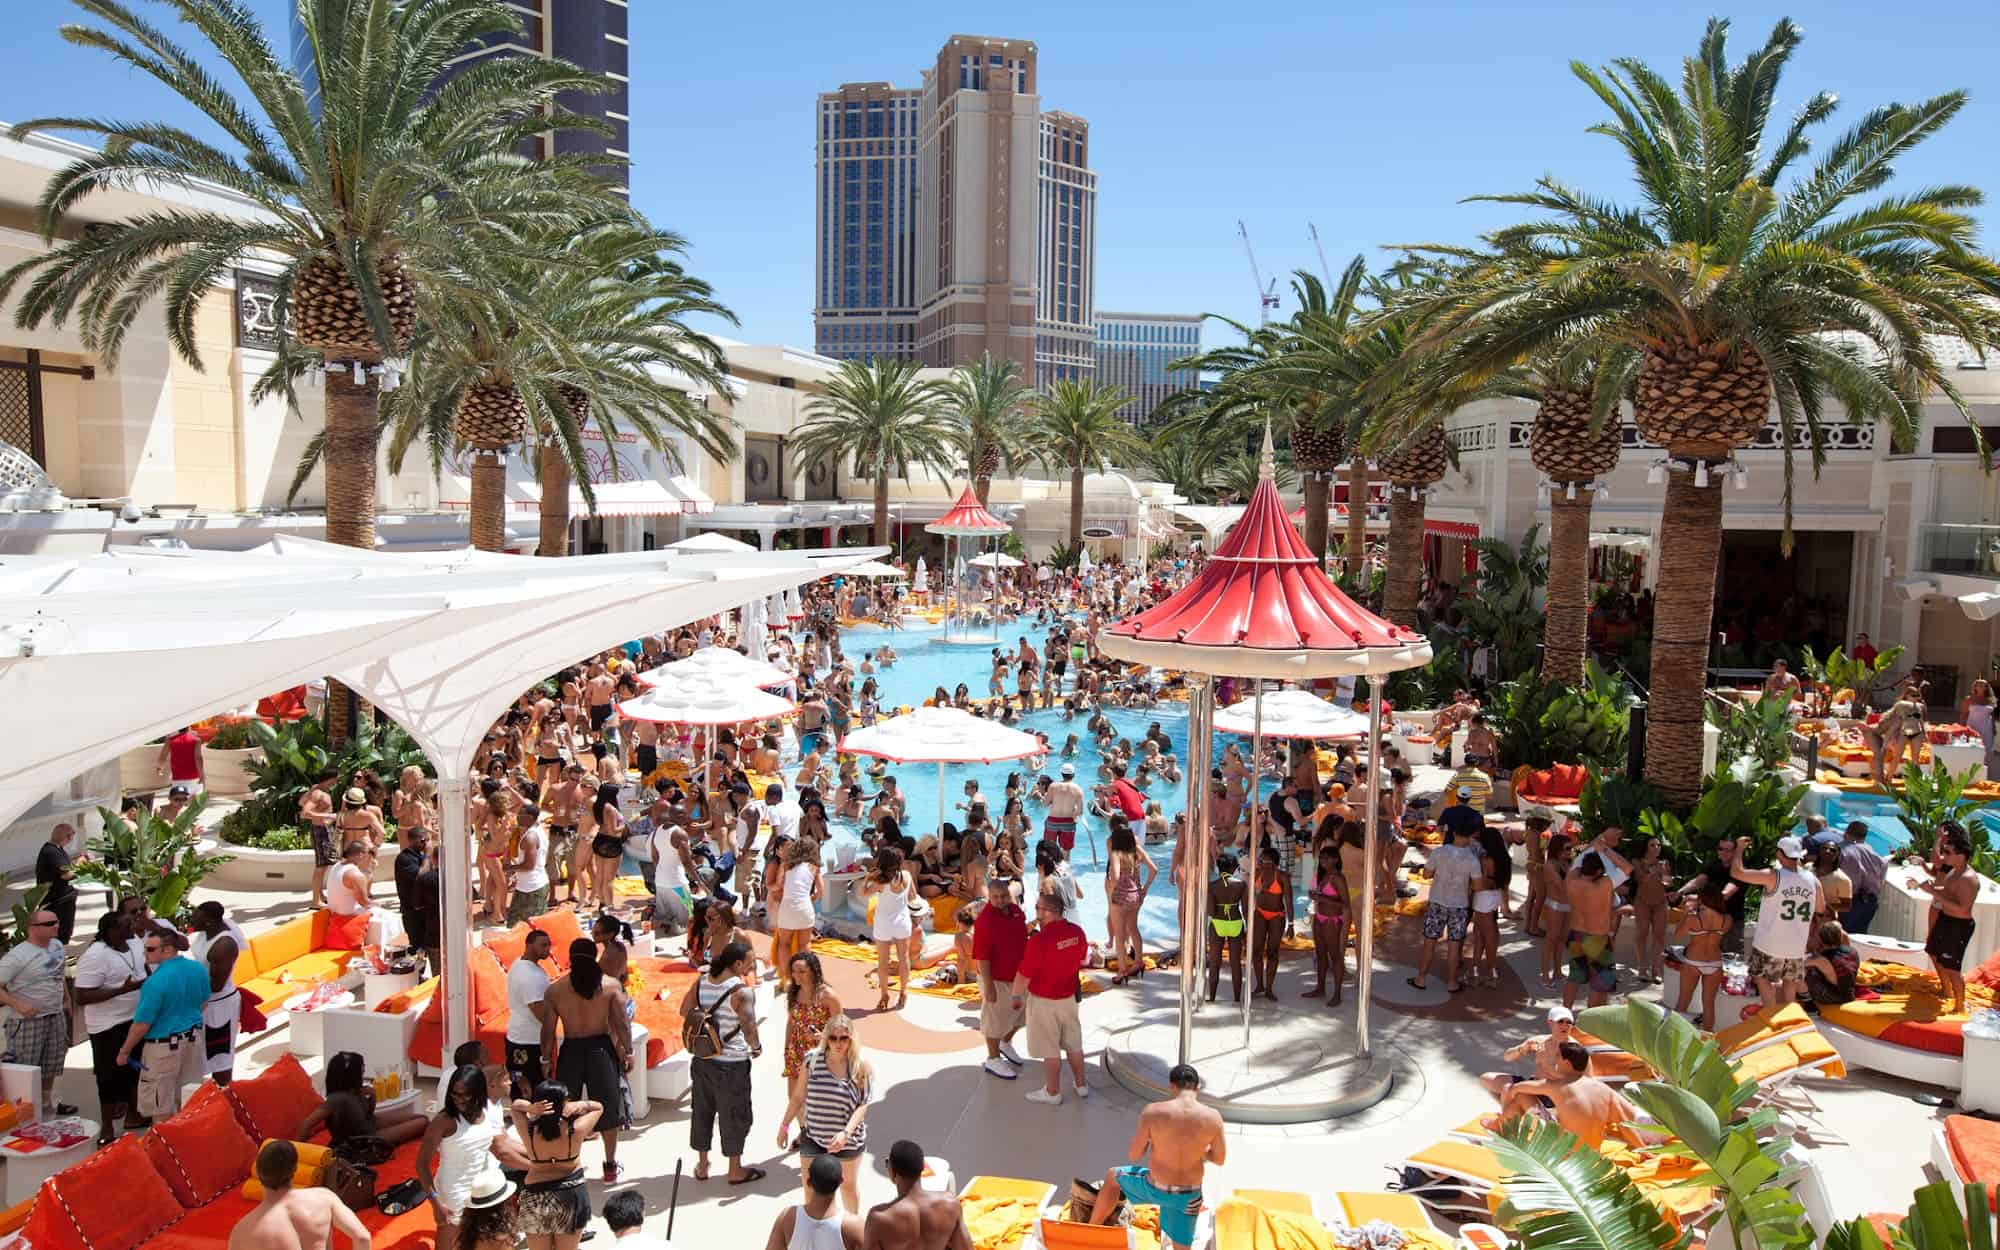 Poolparty's en ultiem relaxen in Las Vegas